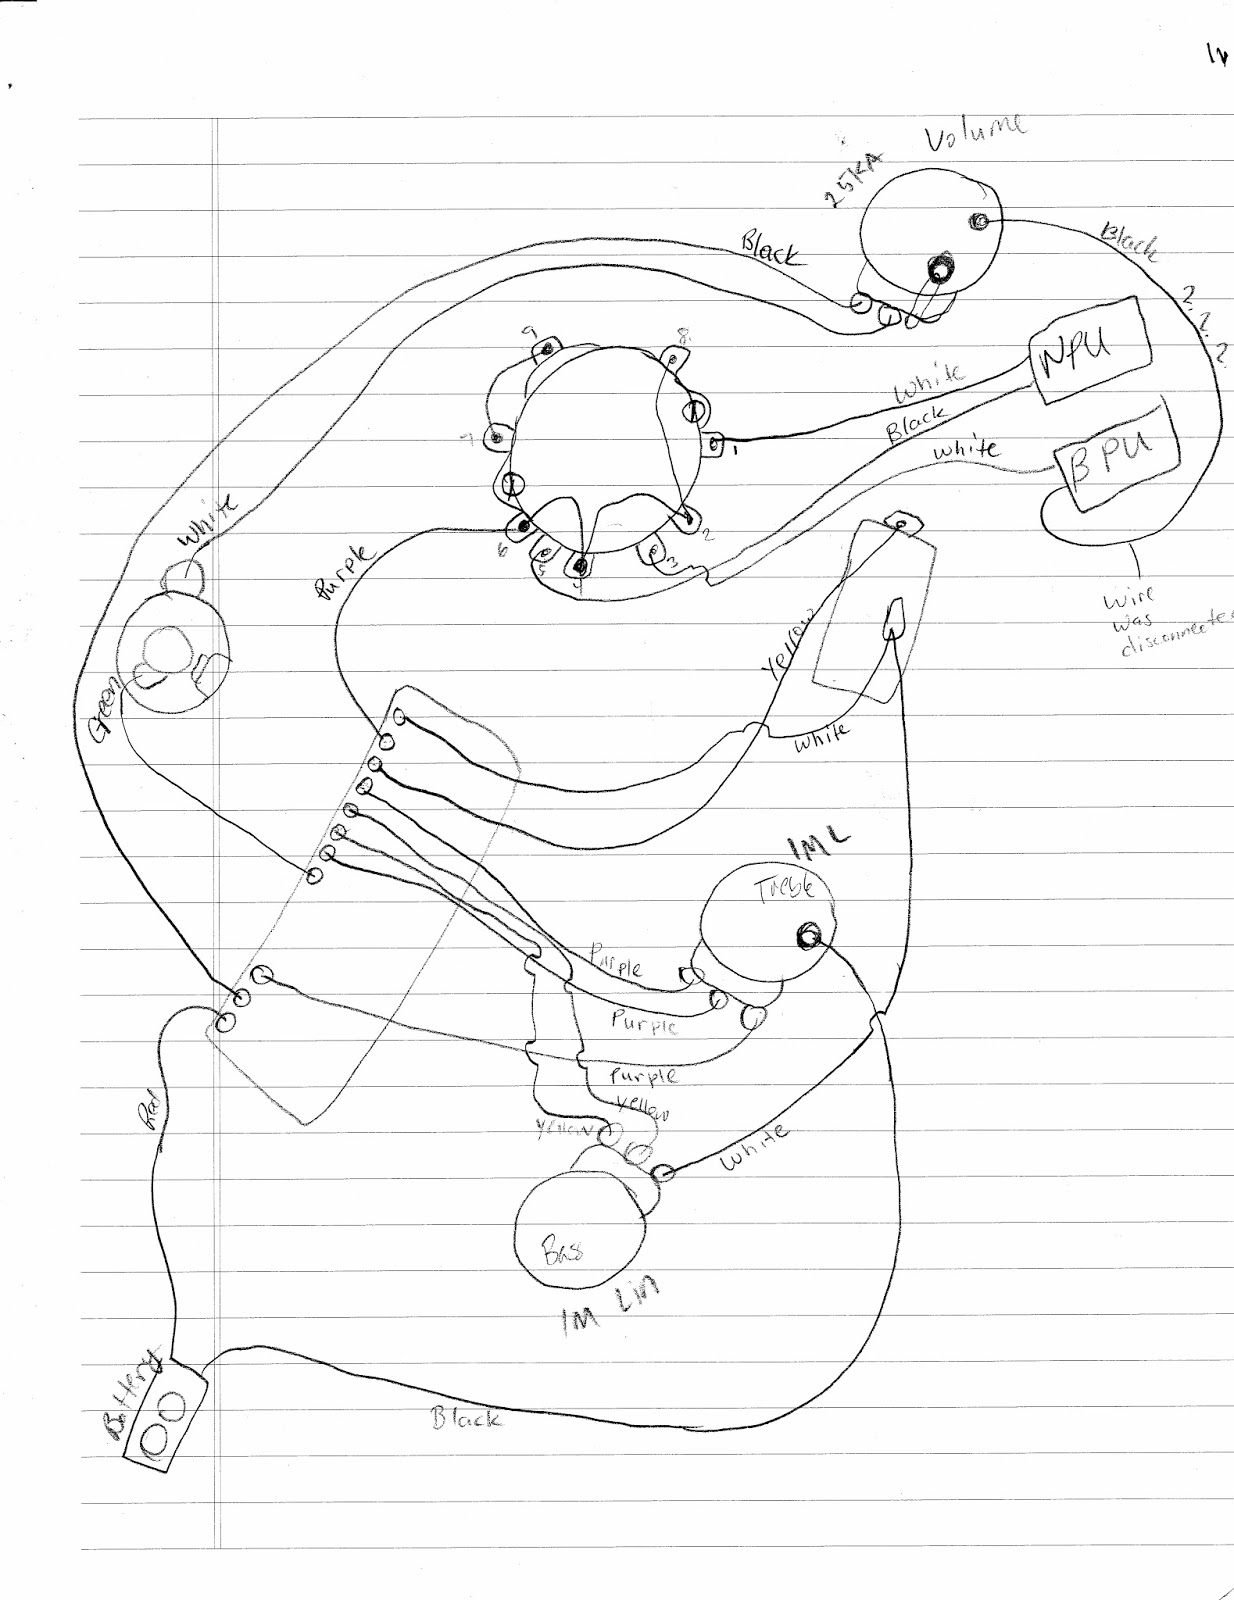 id_0002 1977 musicman stingray ii wiring diagrams griffin effects blog musicman stingray wiring diagram at panicattacktreatment.co